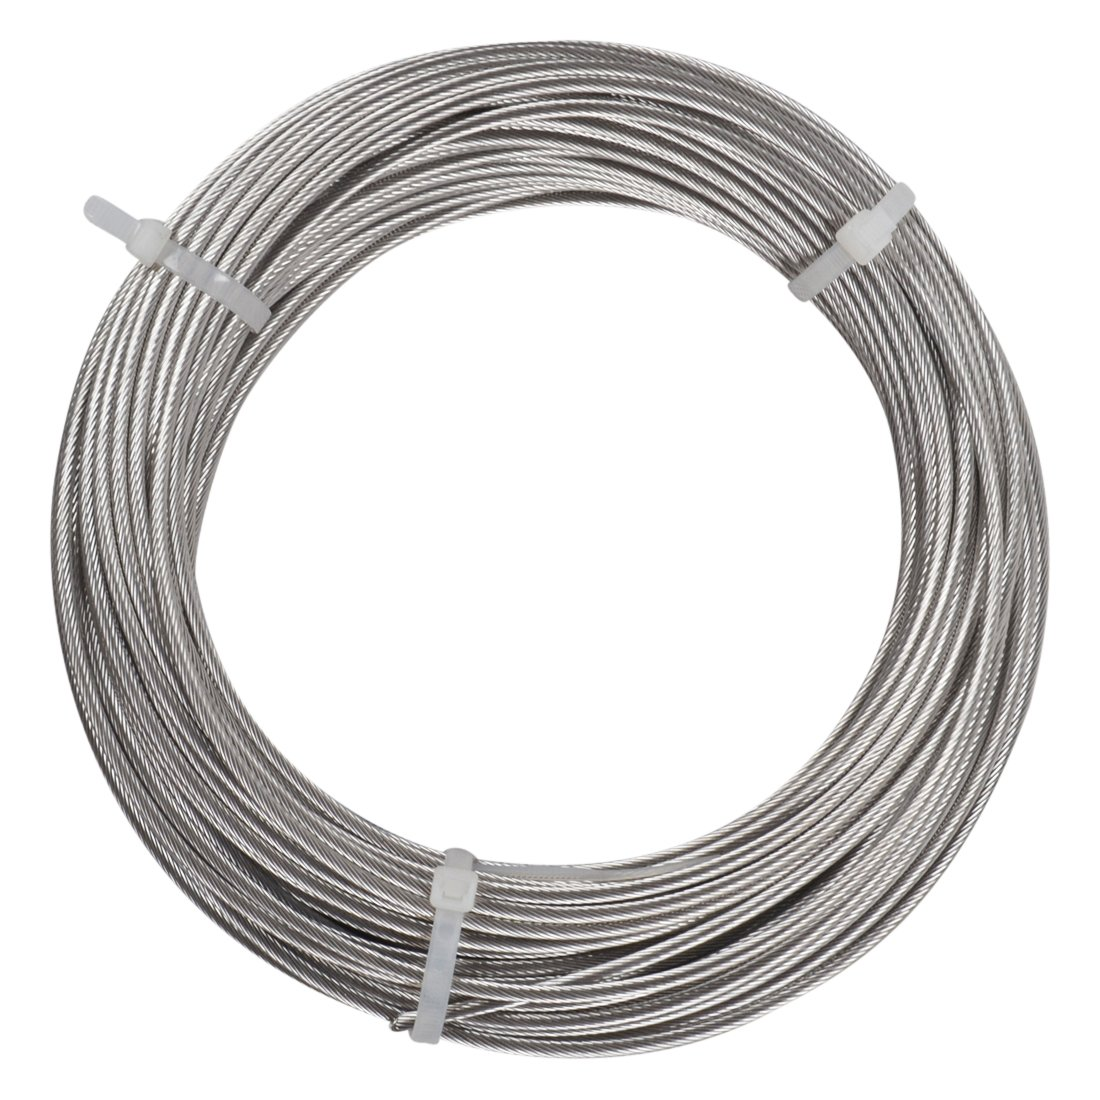 Get Quotations · Yeexue Stainless Steel Aircraft Wire Rope Cable For Railing Decking DIY Balustrade 1